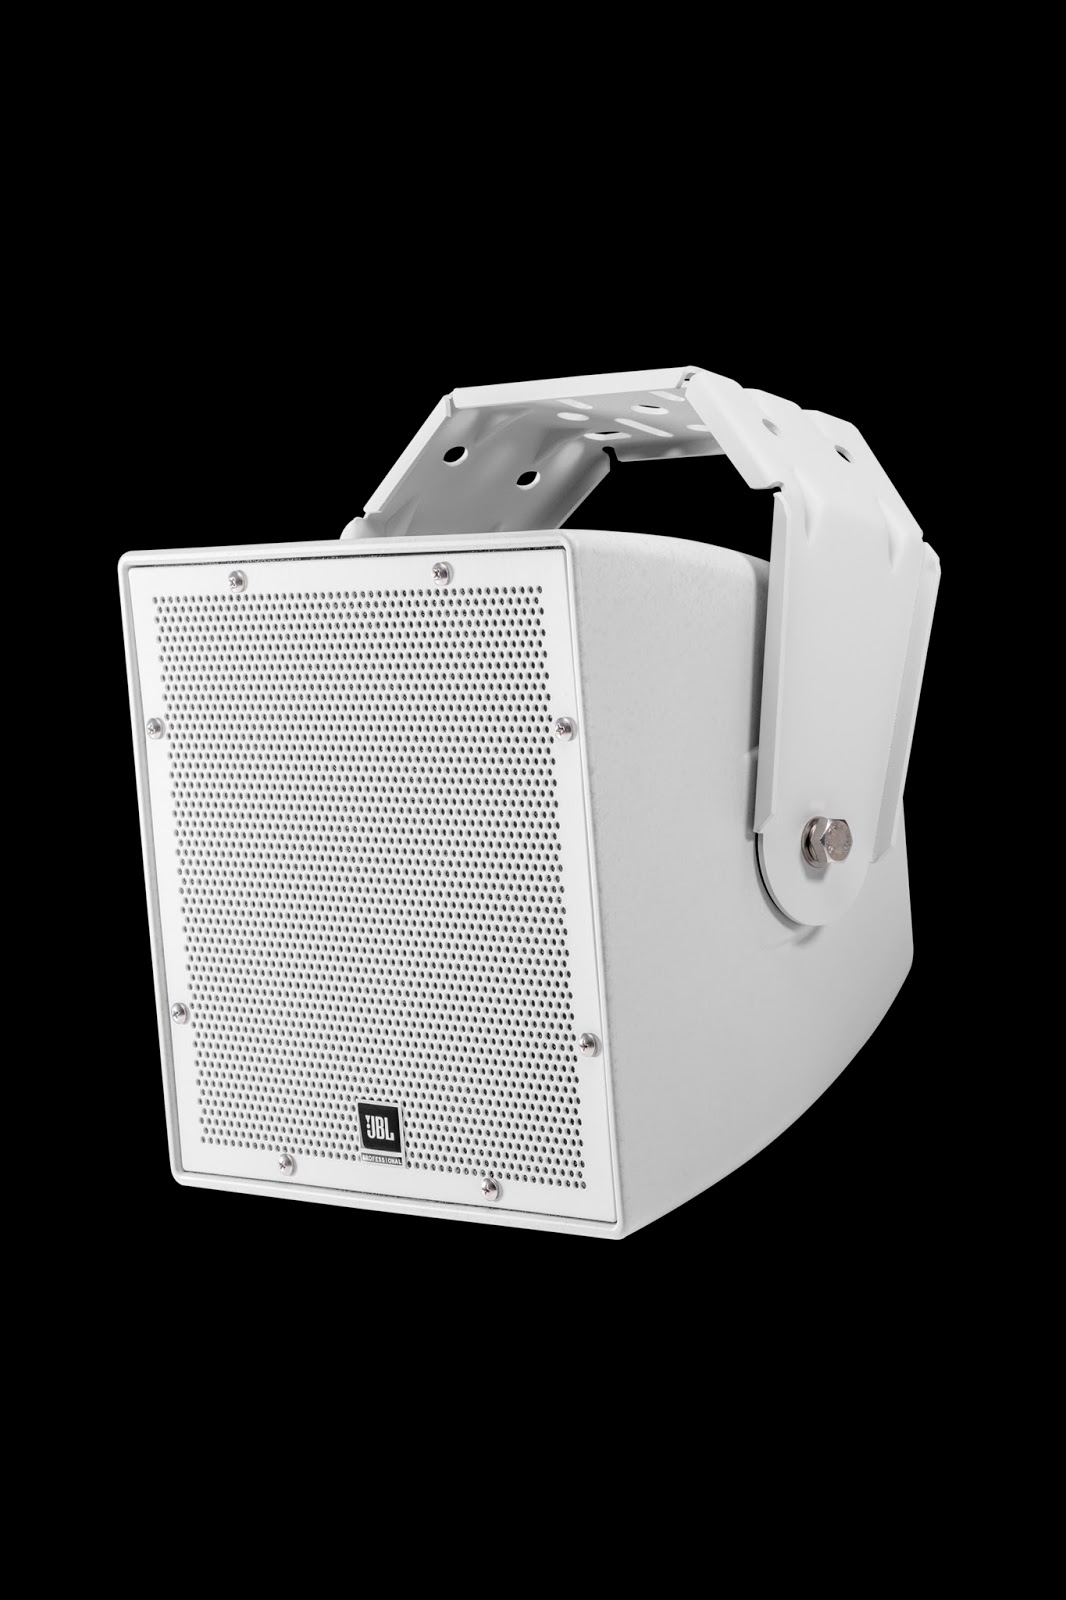 Harman Luxury Audio News: HARMAN Professional Solutions Expands JBL All-Weather Speaker Series With Ultra-Compact AWC62